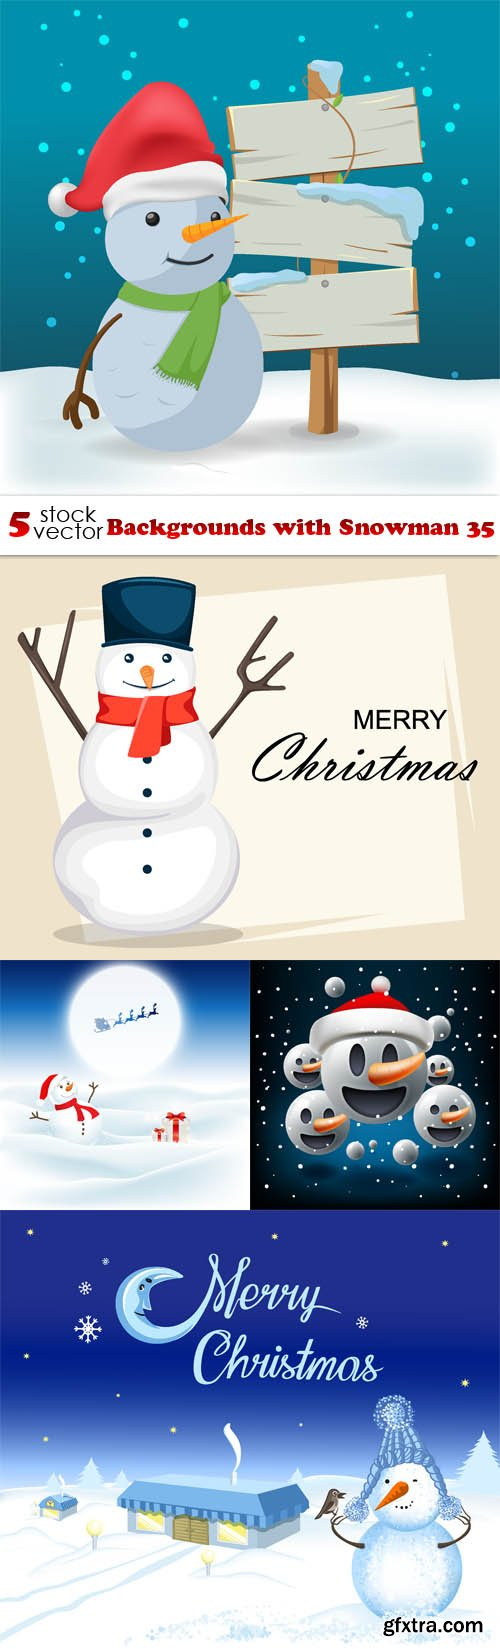 Vectors - Backgrounds with Snowman 35